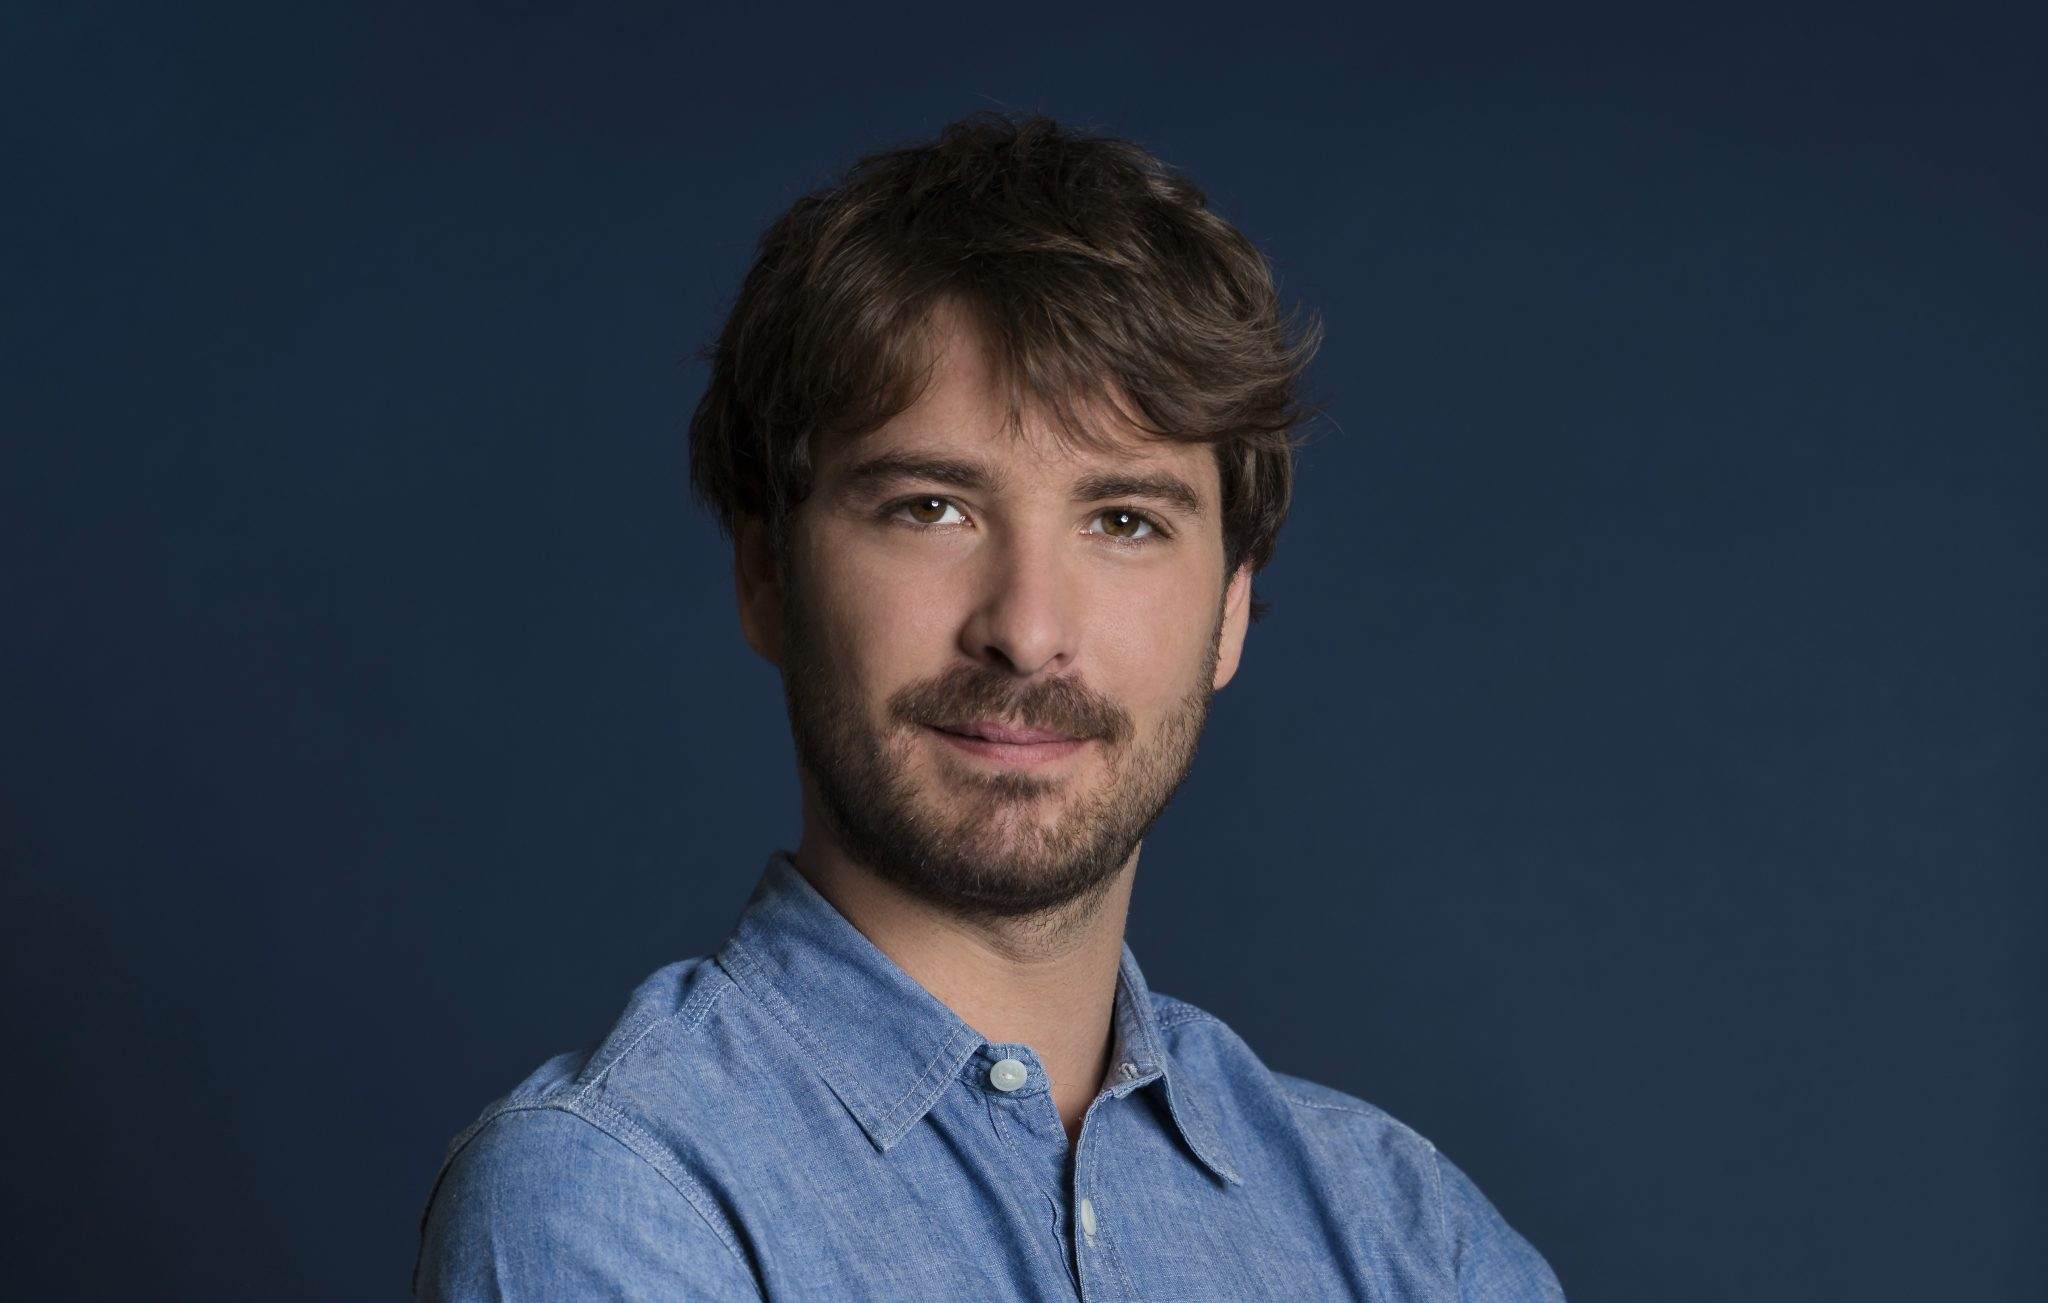 Photo of Paul Guillemin, CEO and cofounder of Fretlink.